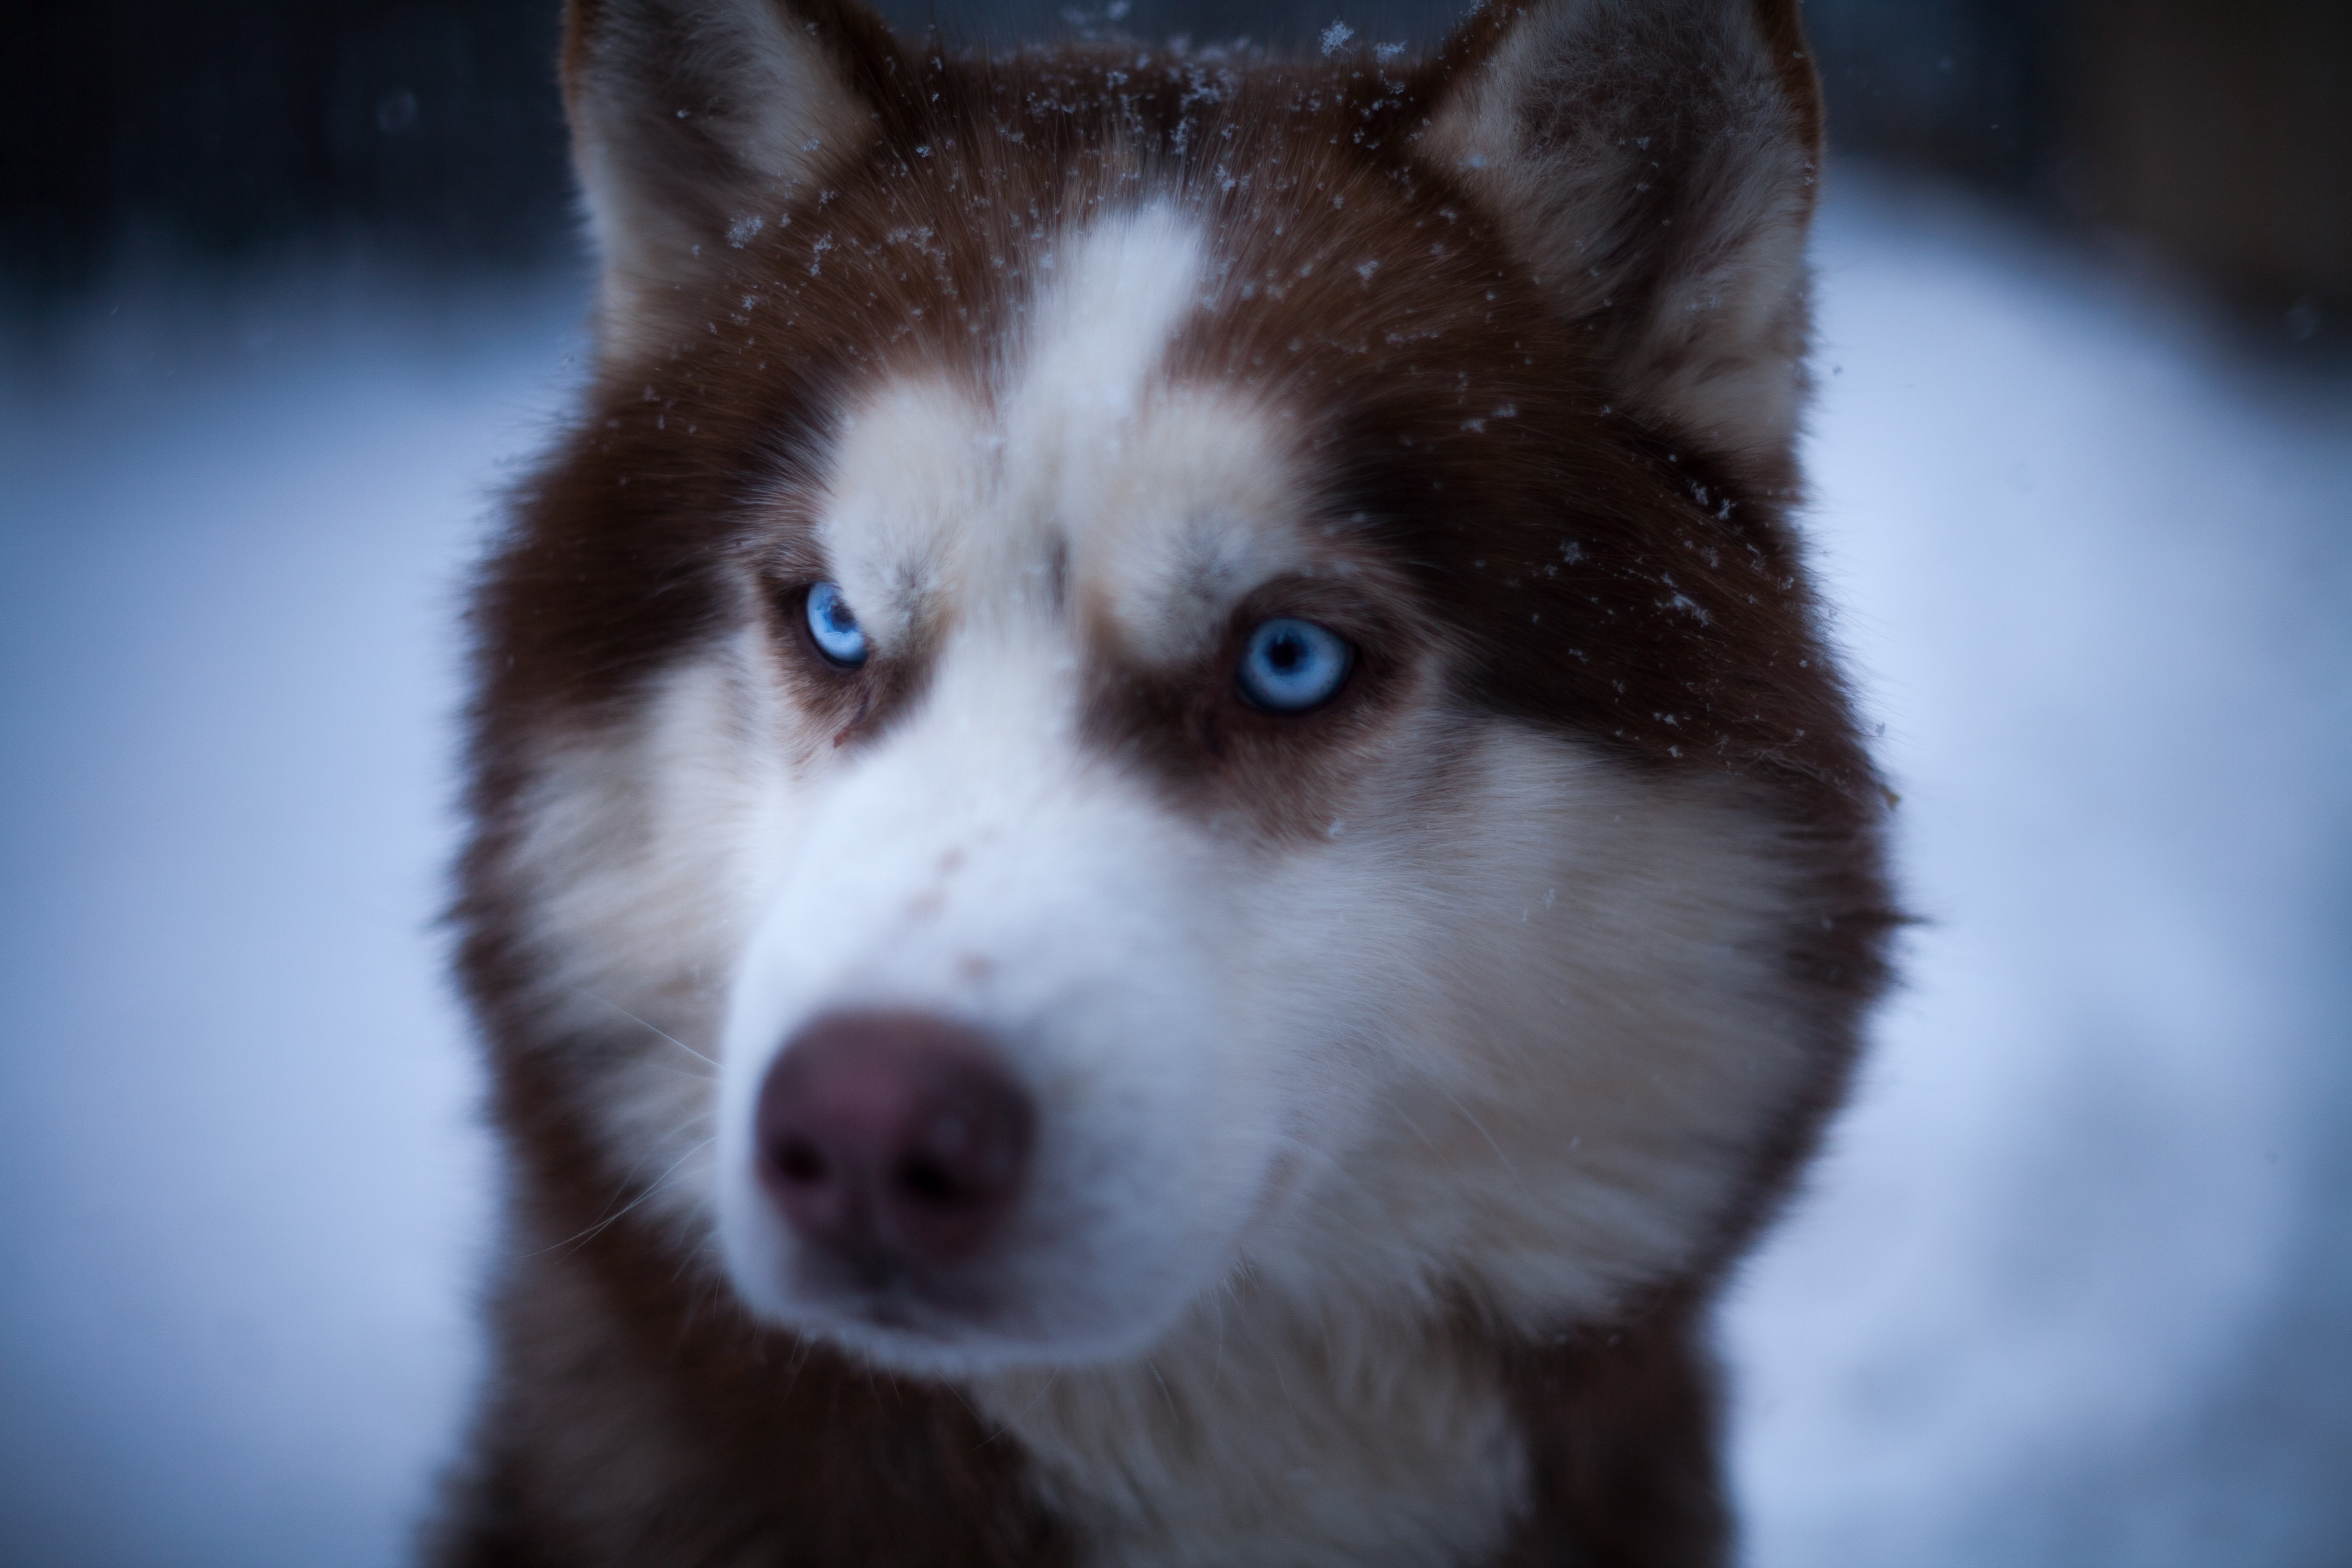 Animal Dog Portrait And Husky Hd Photo By Maxim Andrew Z00ms On